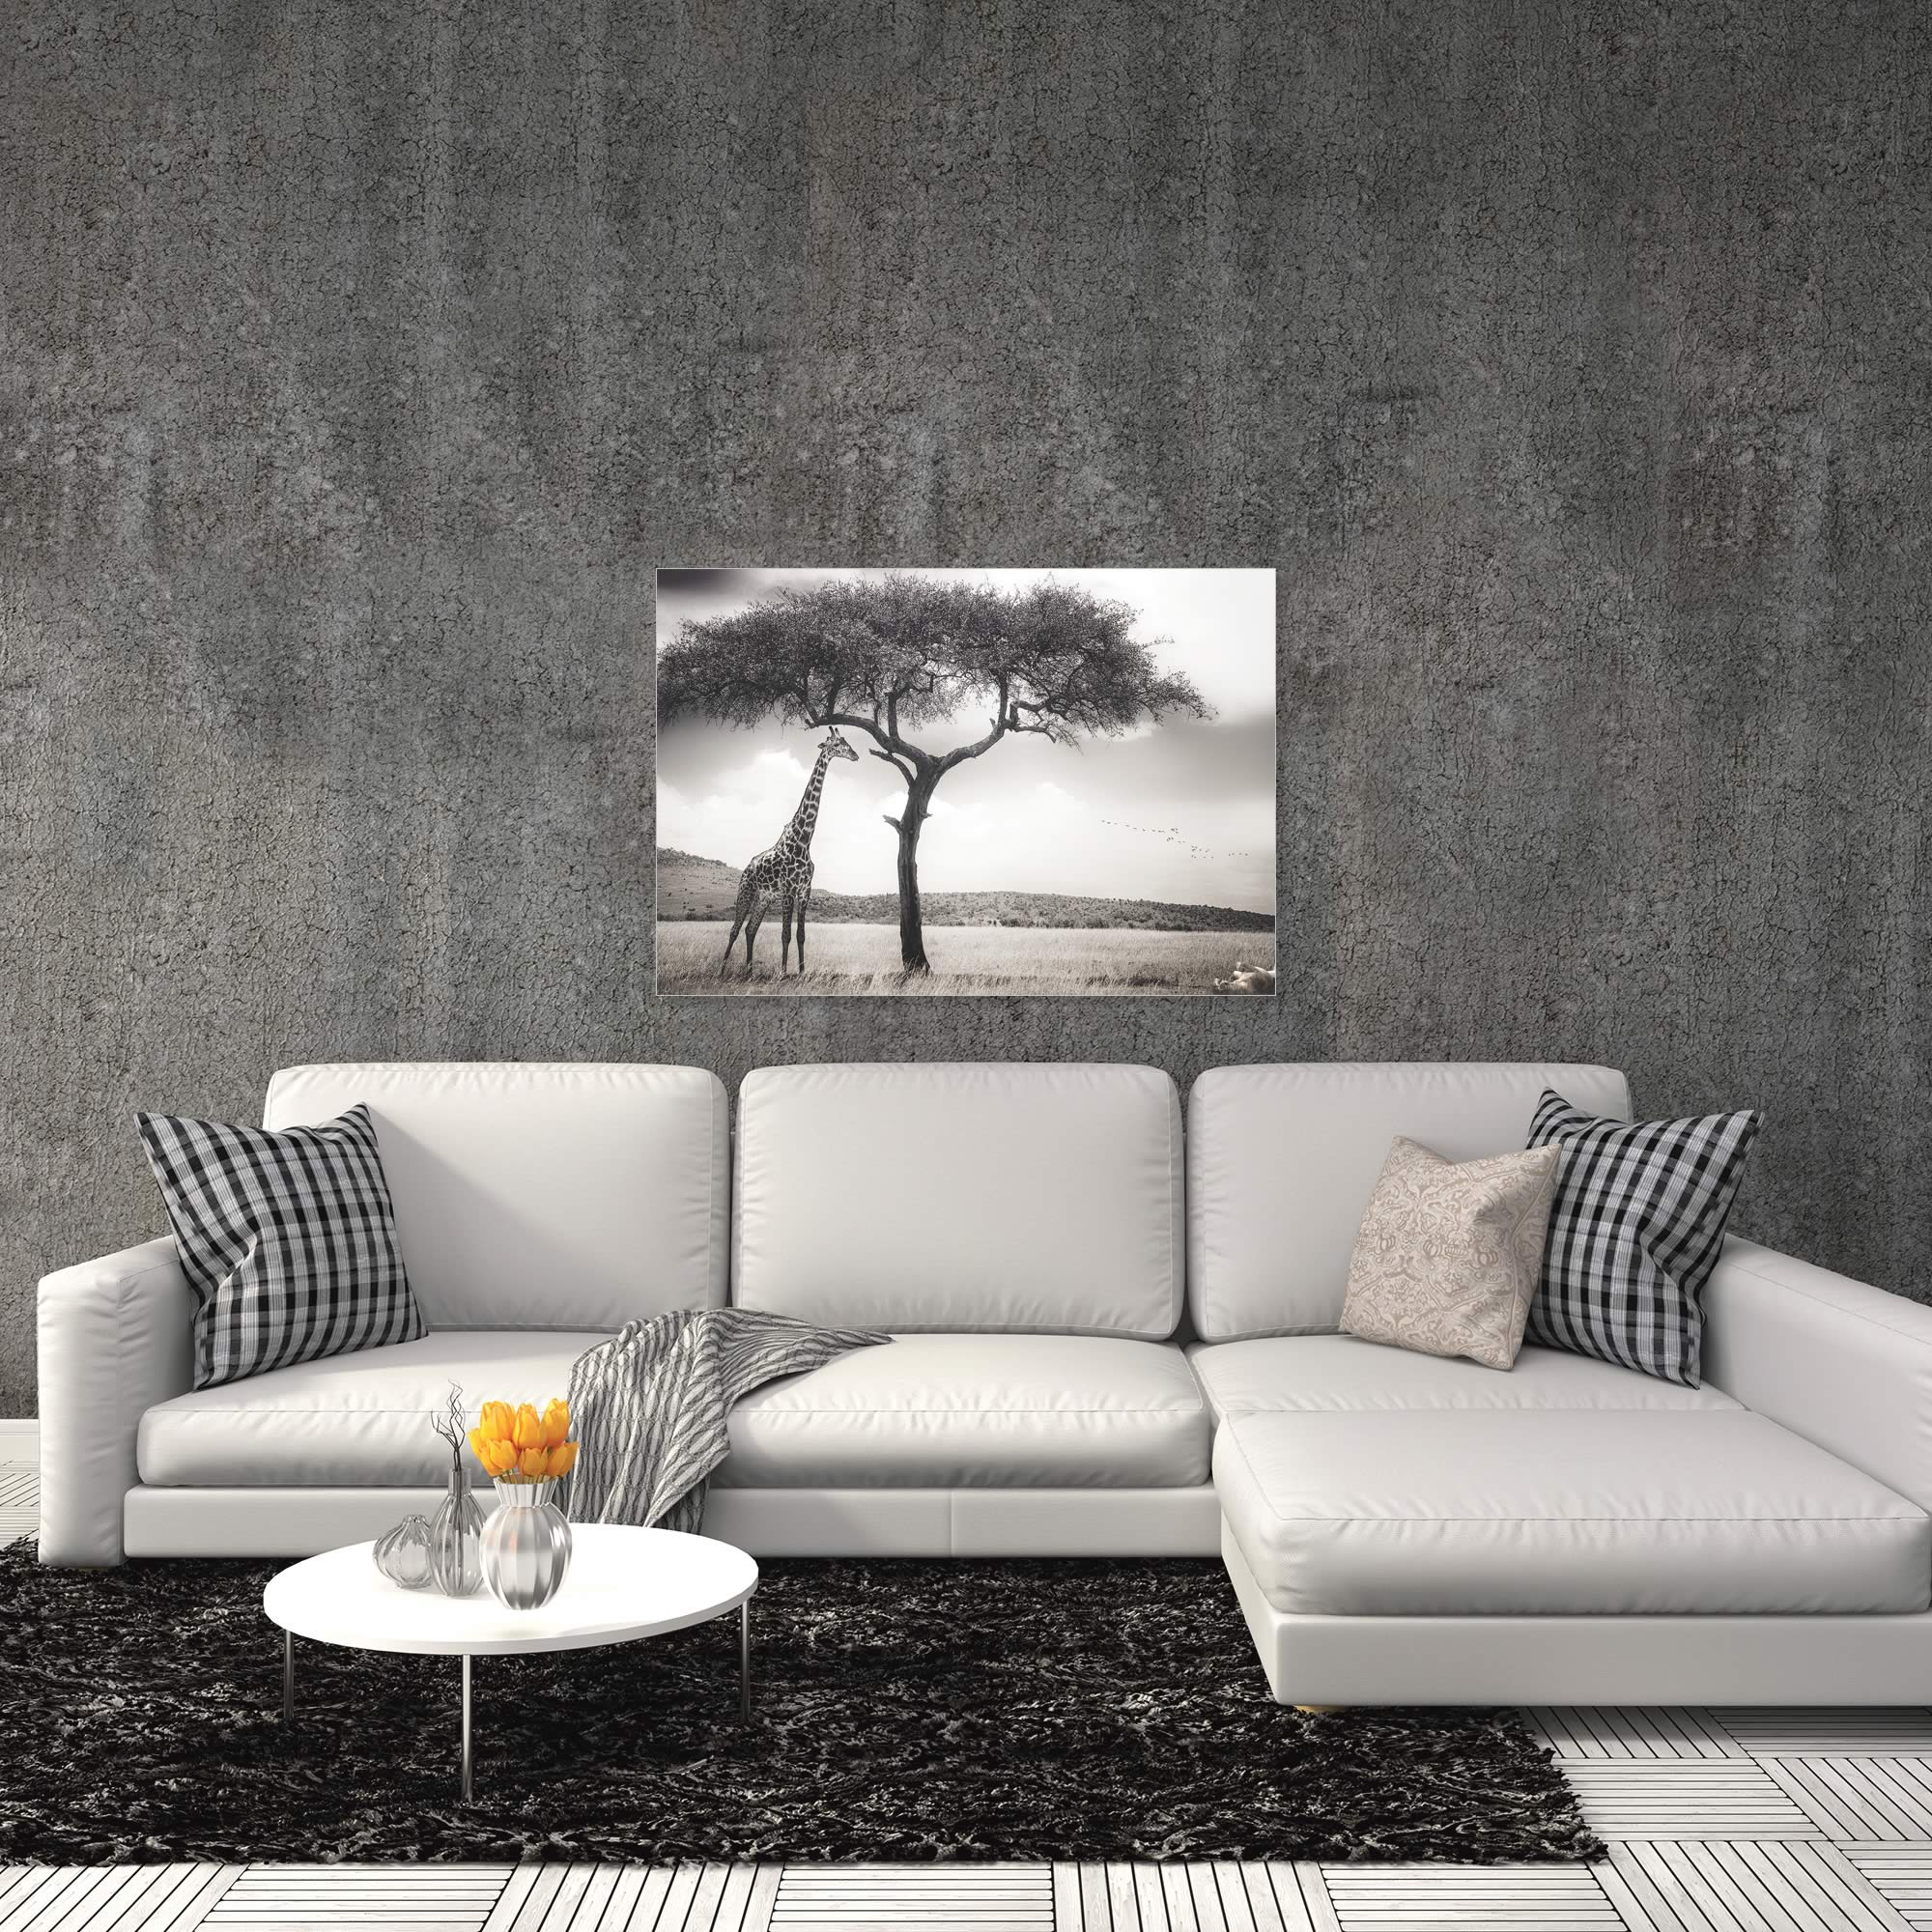 Under the African Sun by Piet Flour - Giraffe Wall Art on Metal or Acrylic - Alternate View 1